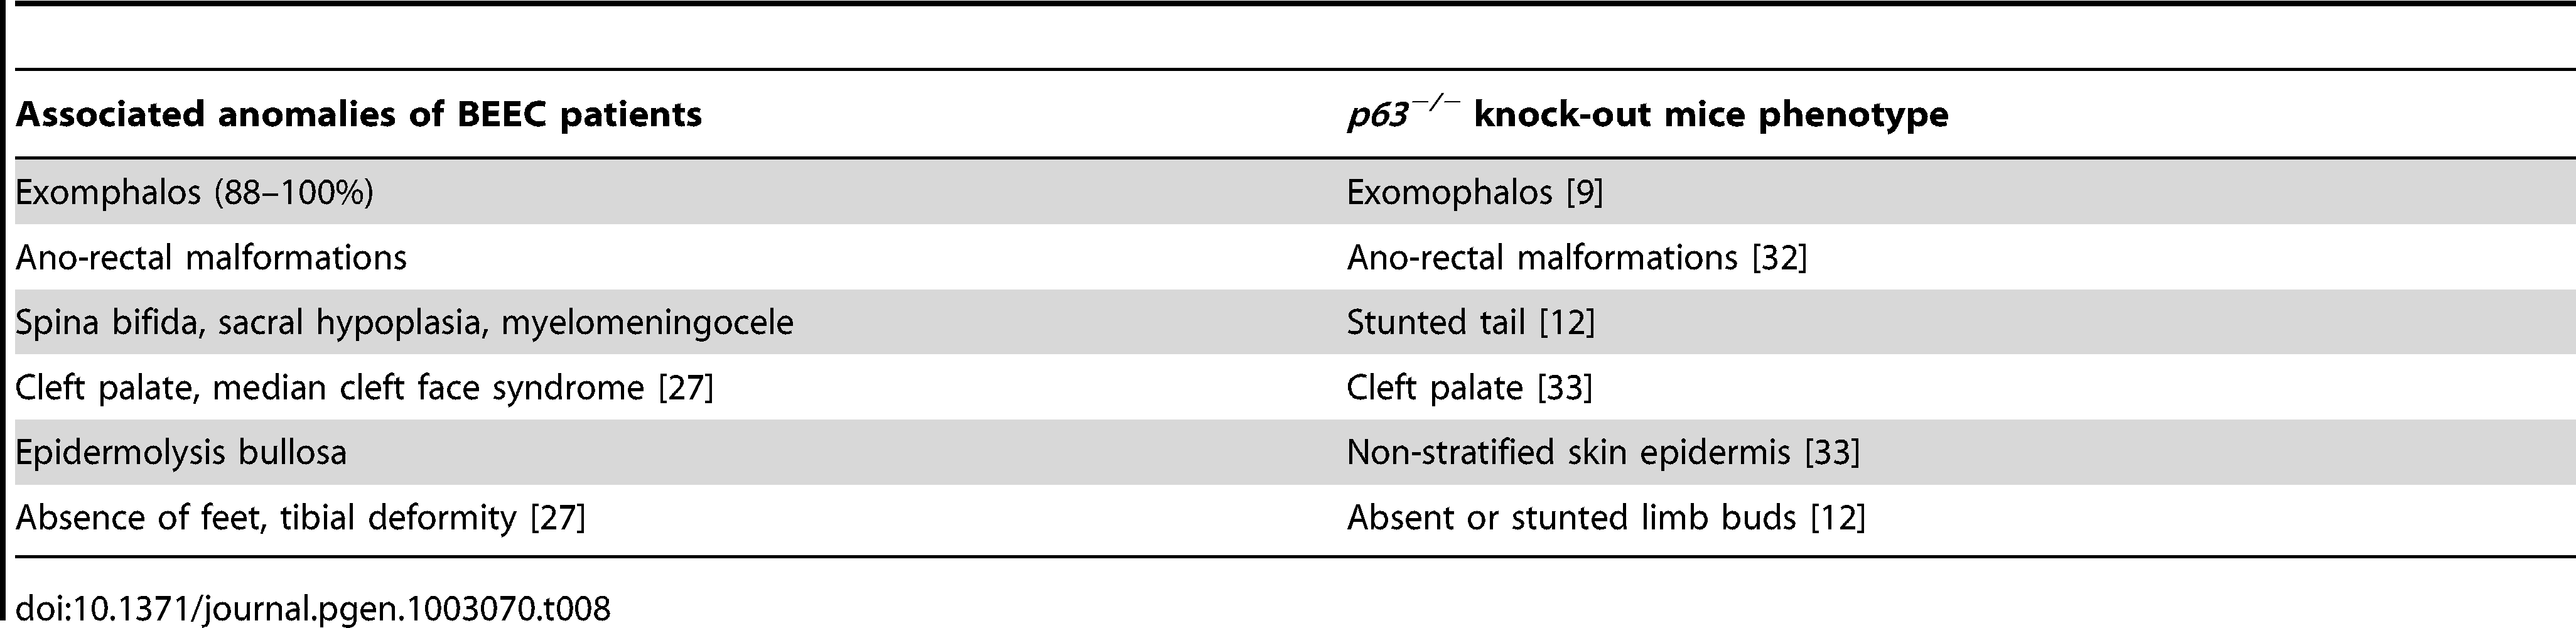 The associated anomalies of BEEC patients compared with the <i>p63<sup>−/−</sup></i> mouse phenotype.